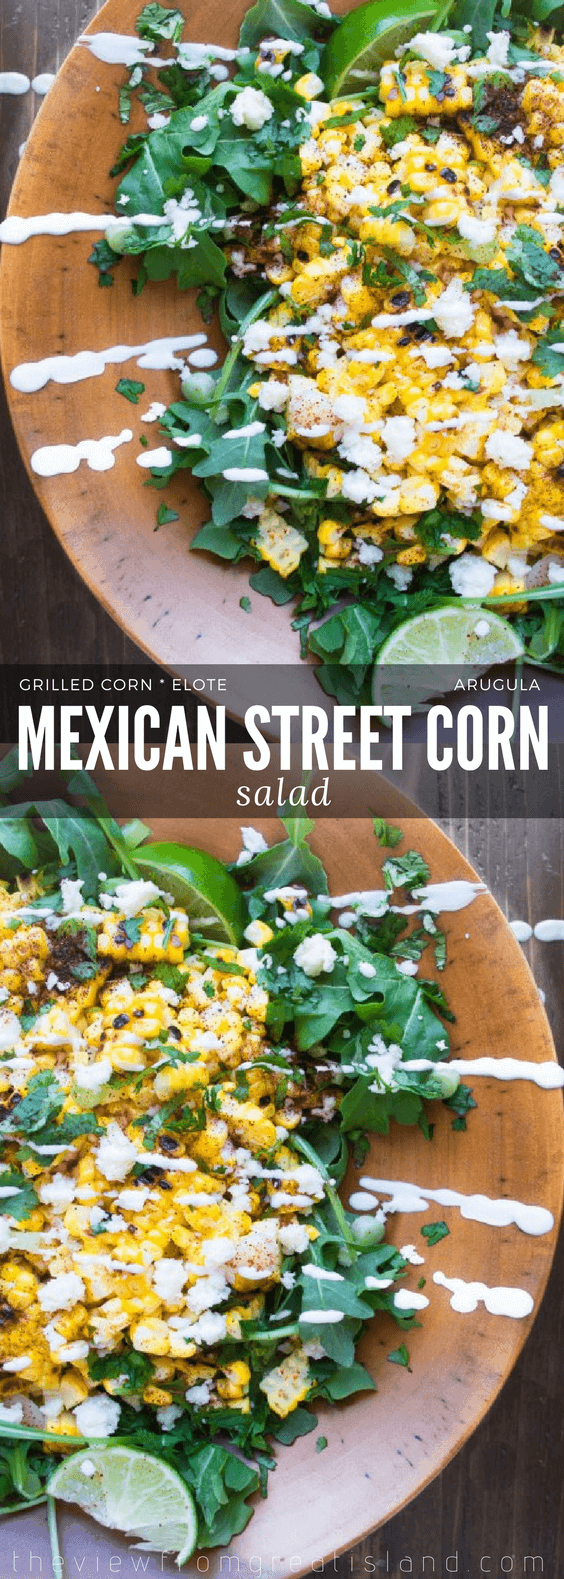 My Mexican Street Corn Salad takes the popular south of the border street food to a whole new level! #elote #mexican #streetcorn #cornonthecob #cornsalad #salad #healthy #sidedish #cincodemayo #memorialday #picnic #potluck #barbecue